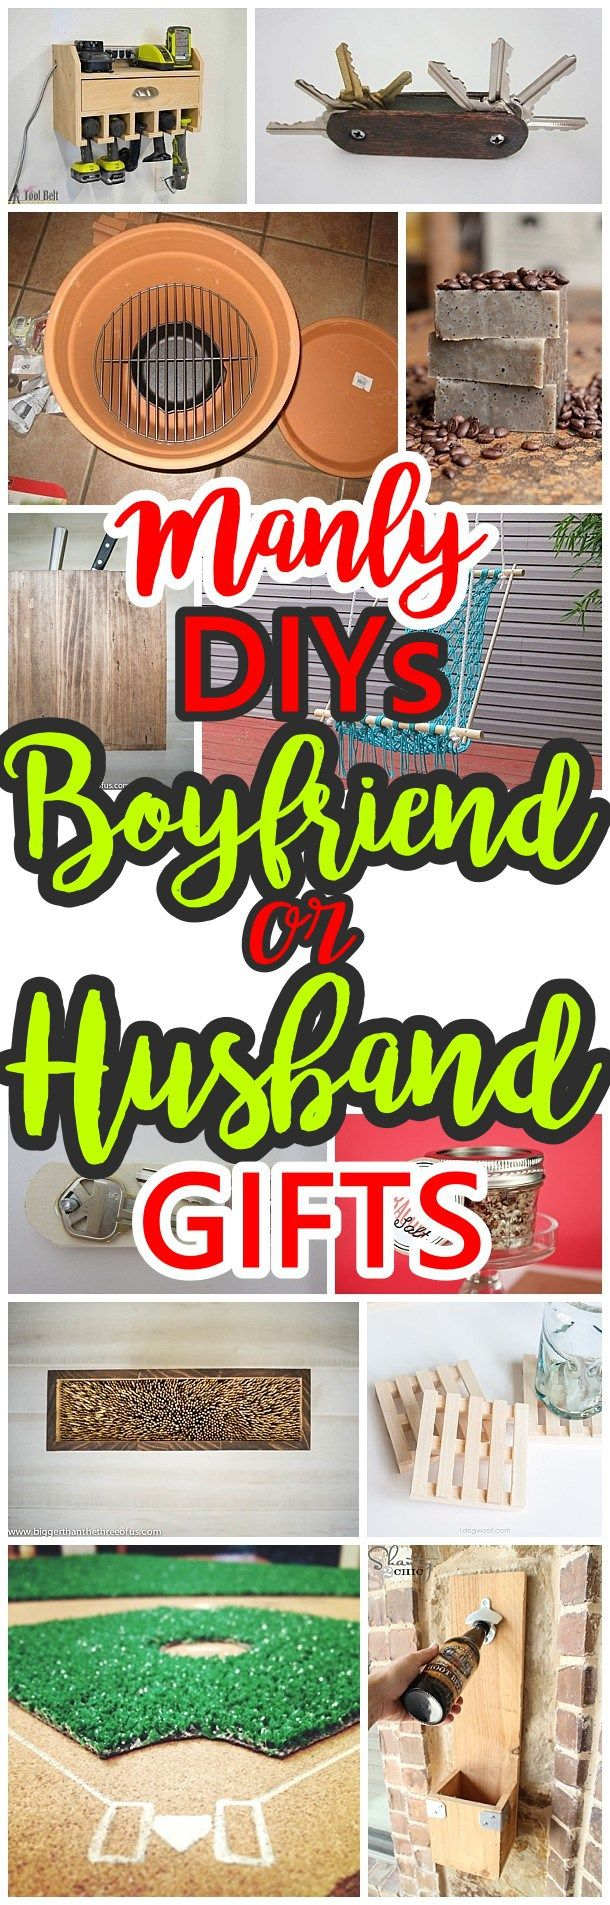 Best 25+ Graduation gift for boyfriend ideas on Pinterest ...